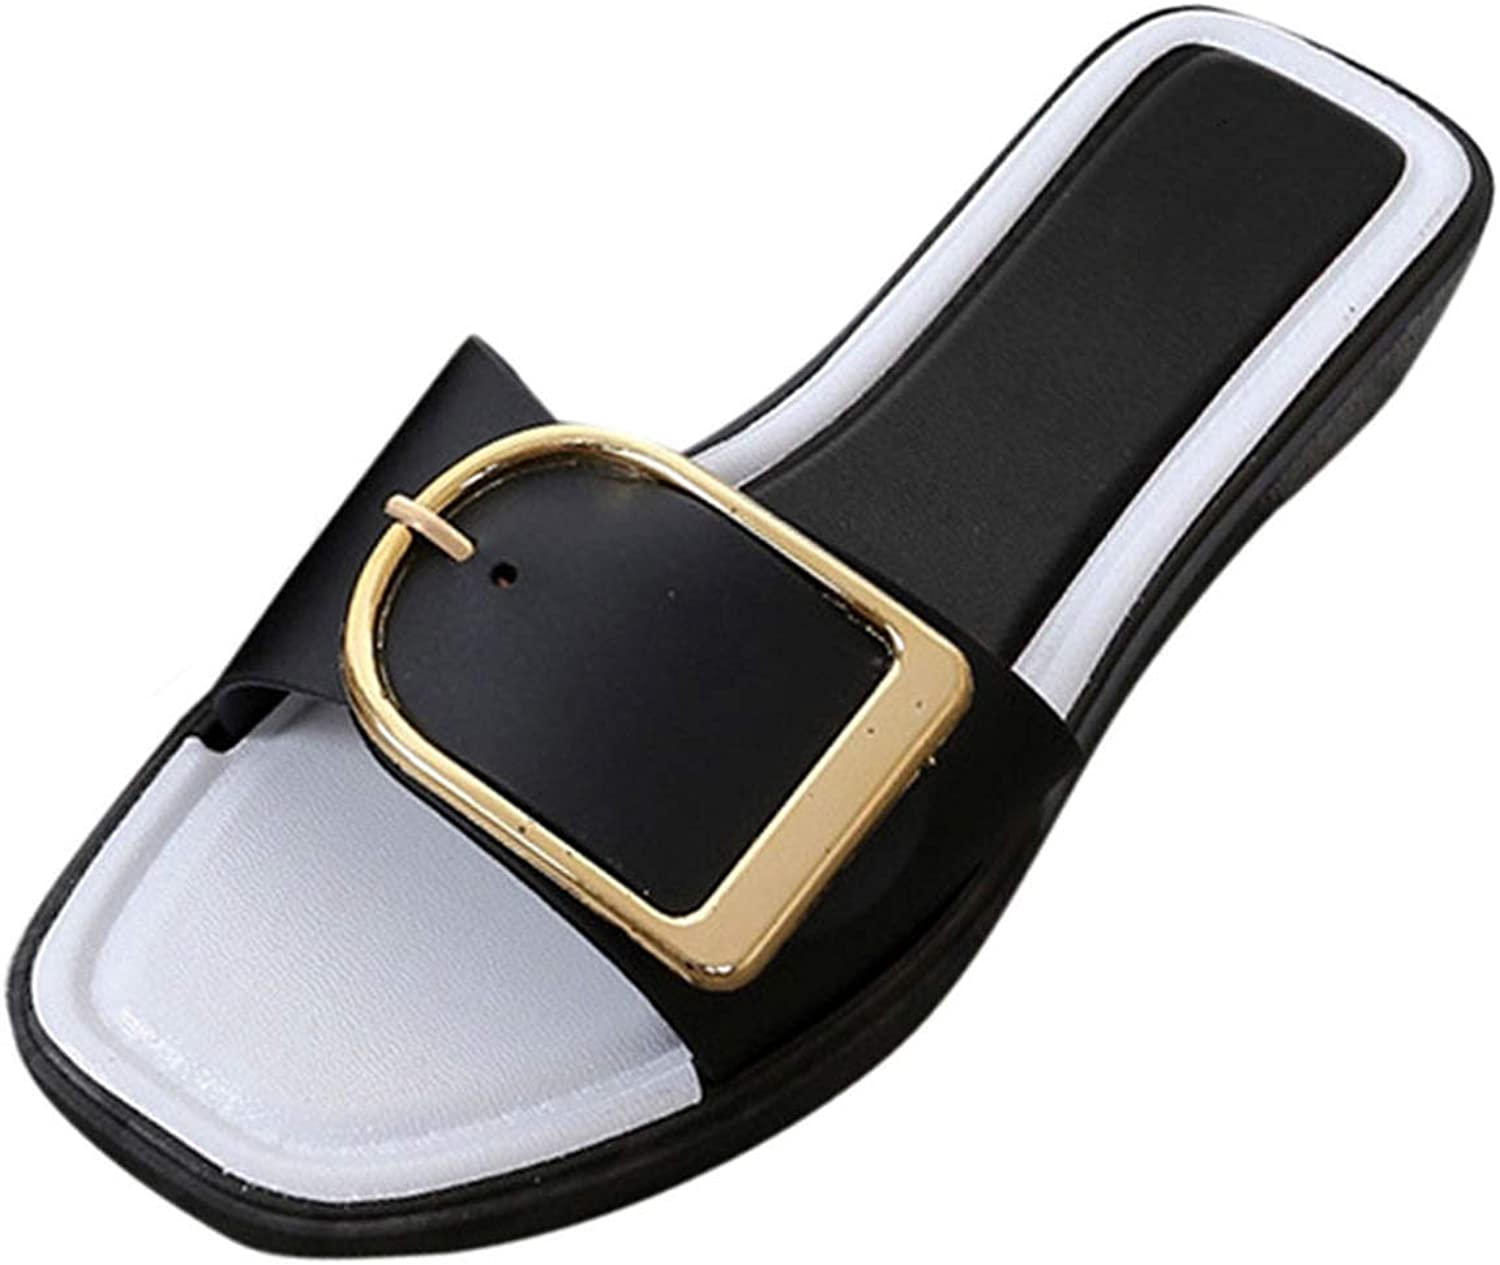 Rather be shoes Women Summer Slides Flat Heel Square Buckle Sandals Slipper Casual shoes Female Casual Slipper shoes women